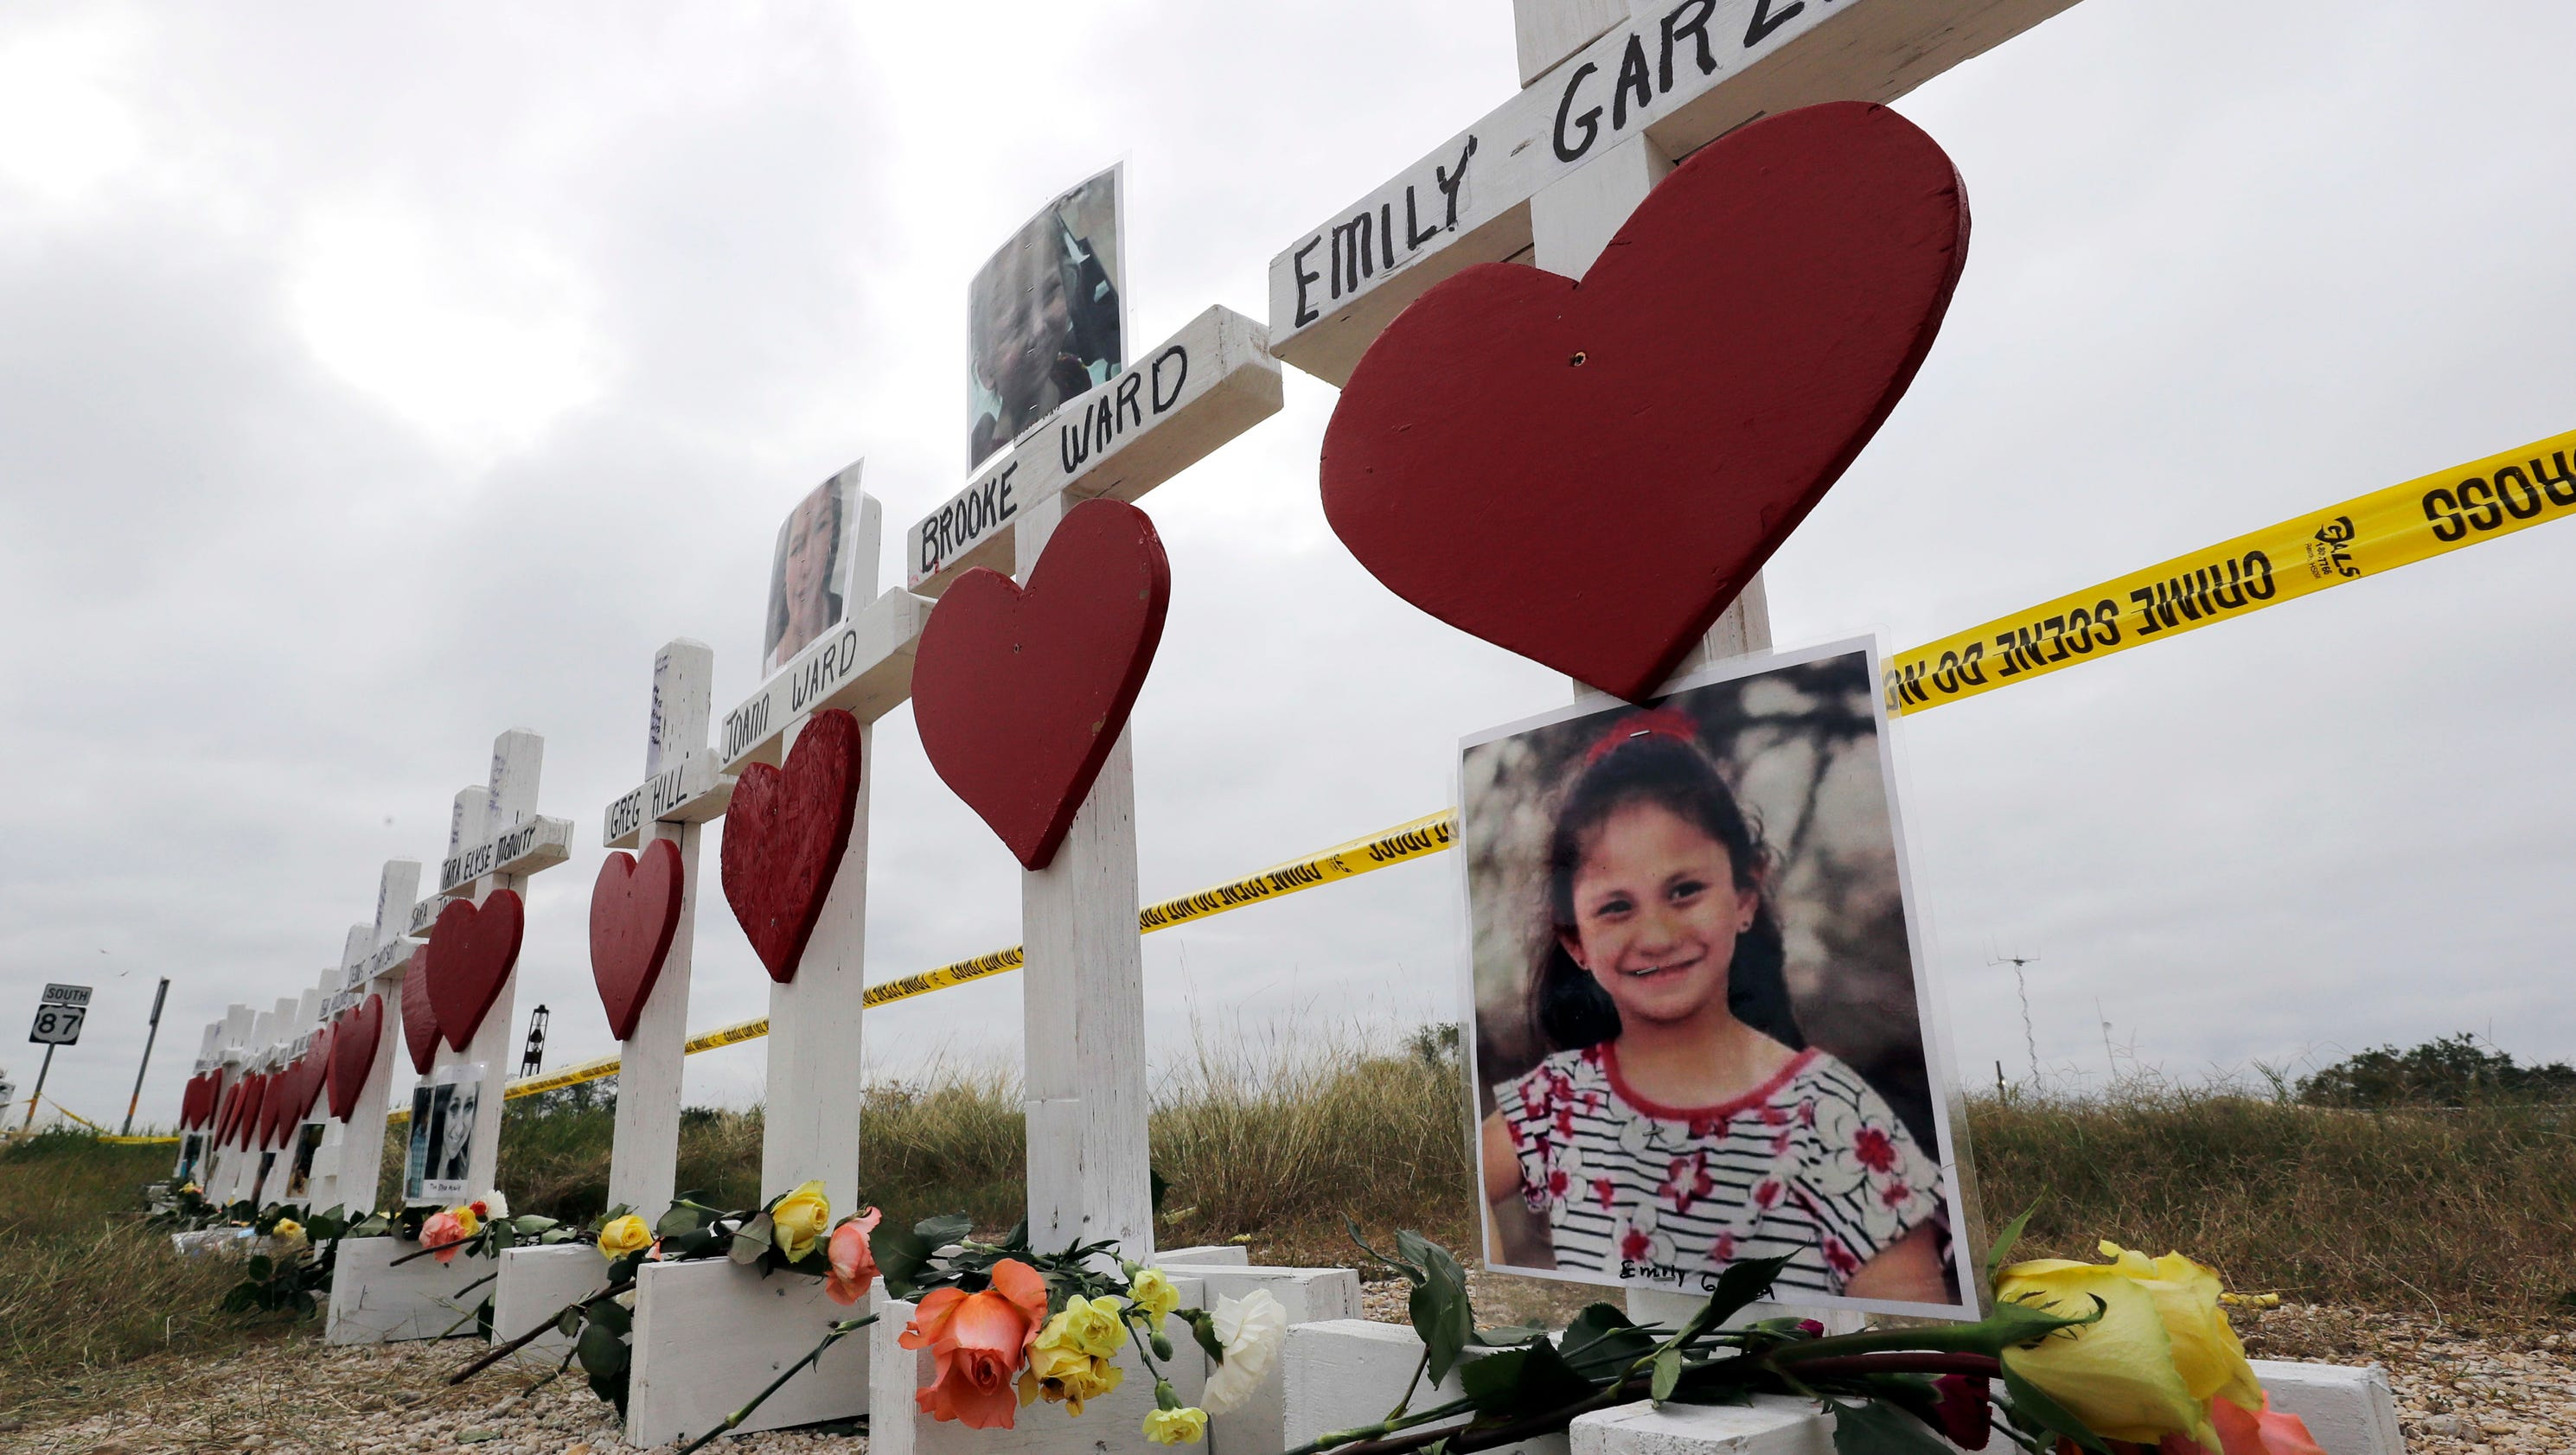 Texas shooting: Church forms bedrock of Sutherland Springs community